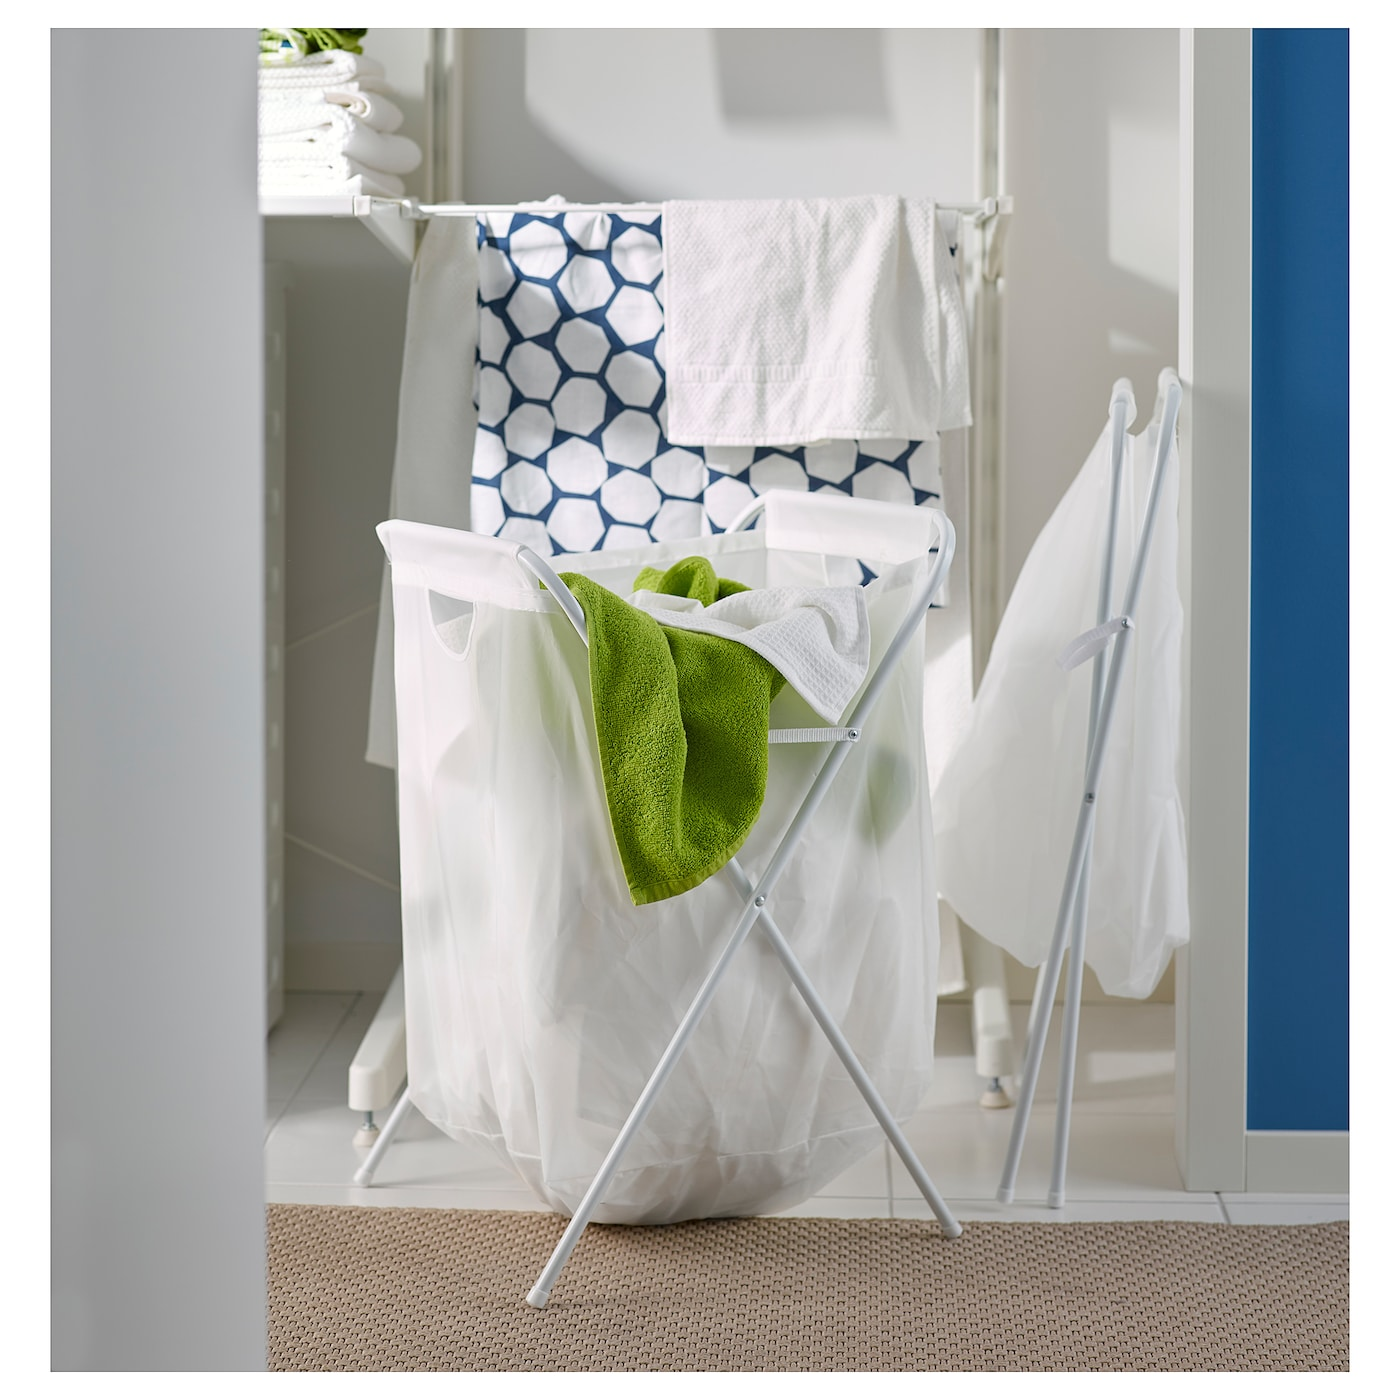 Hamper Jall New IKea White Laundry Bag